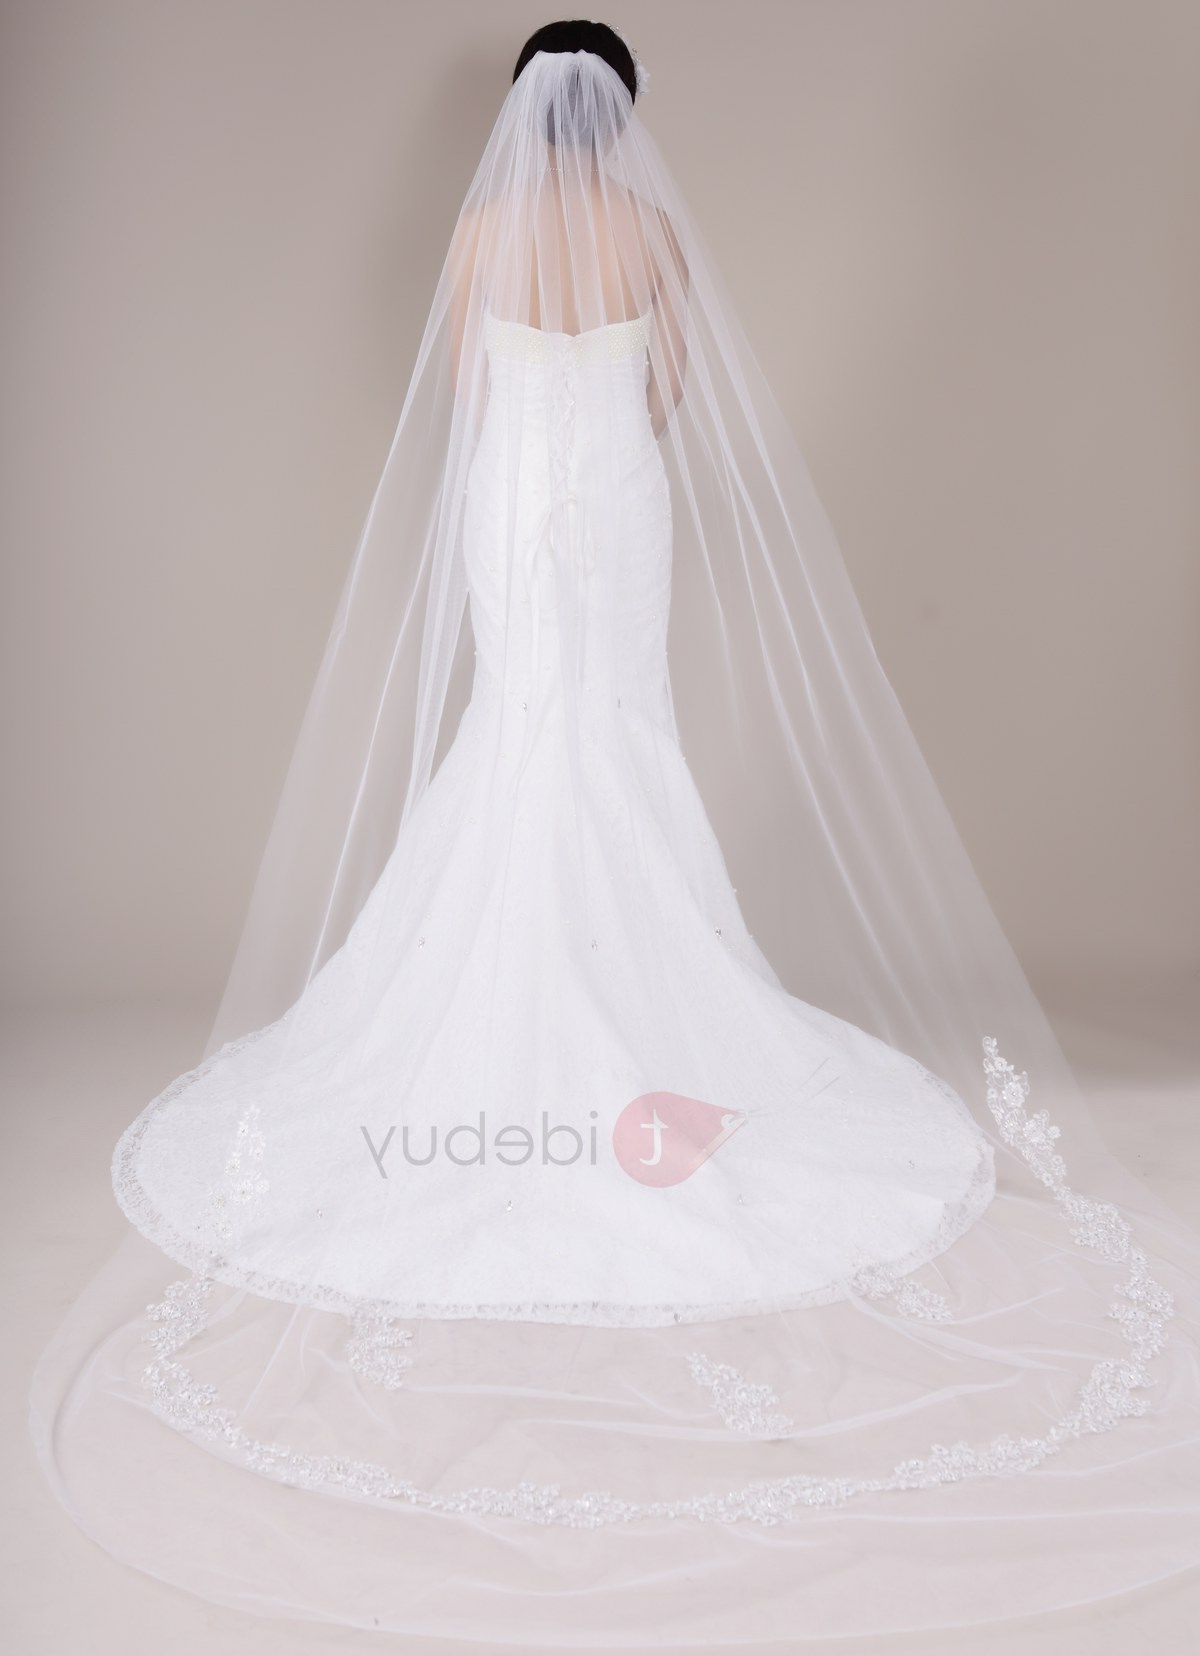 Best And Newest Wedding Hairstyles With Extra Long Veil With A Train For New Cathedral Train Long Wedding Veil, Tulle Bridal Veil : Tidebuy (View 20 of 20)